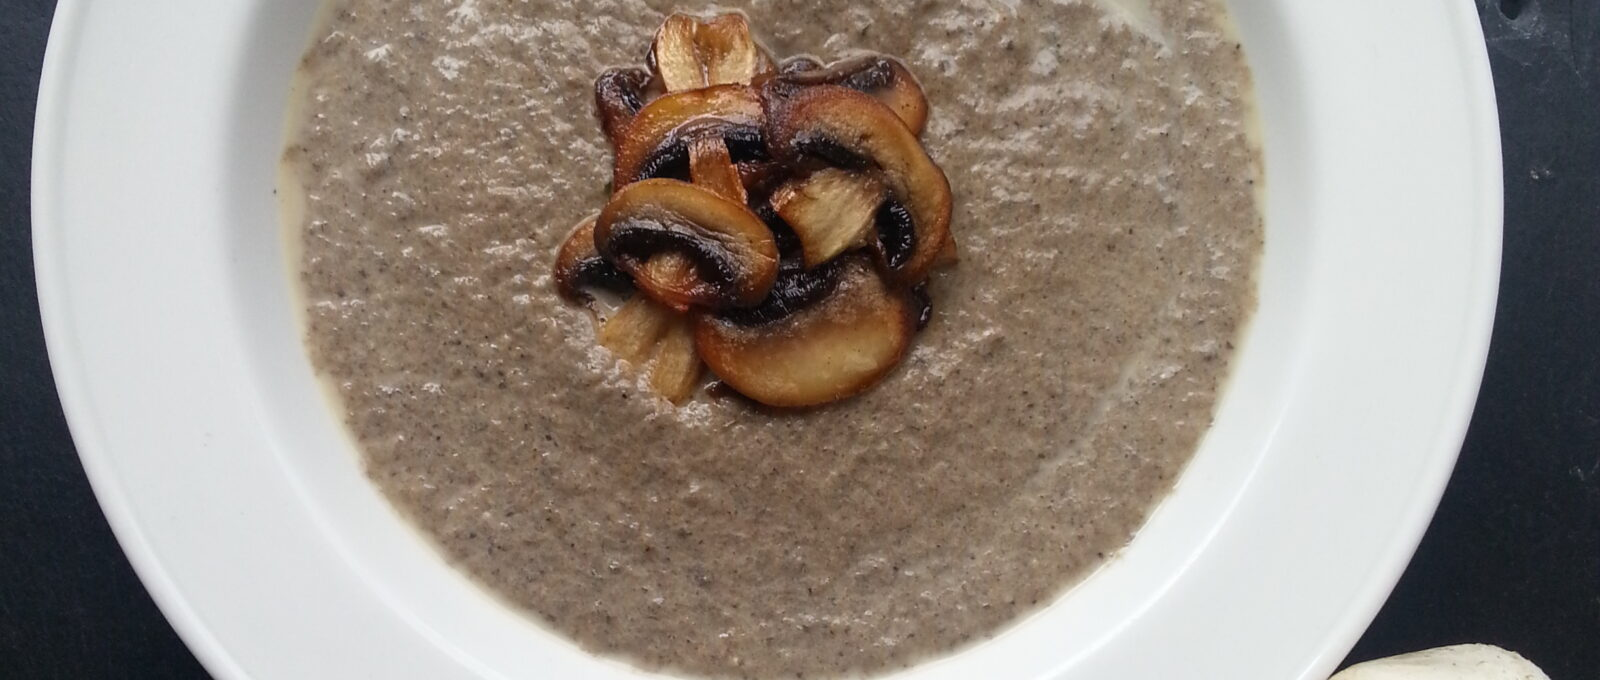 A bowl of delicious mushroom and roast garlic soup, garnished with fried slices of mushroom